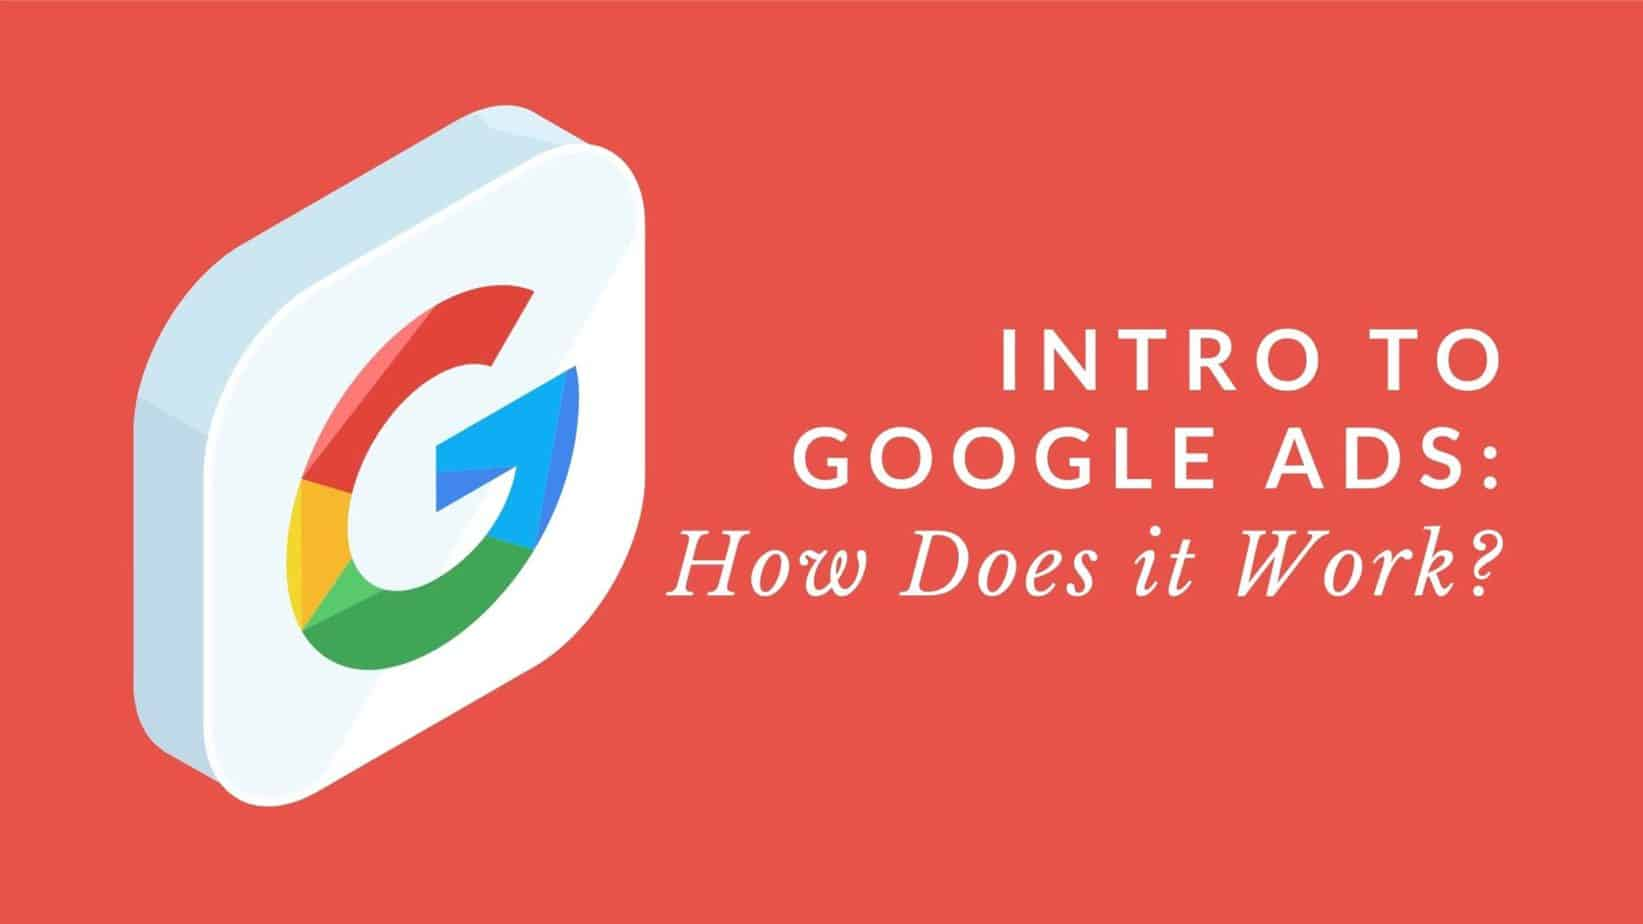 Intro to Google Ads: How Does it Work?